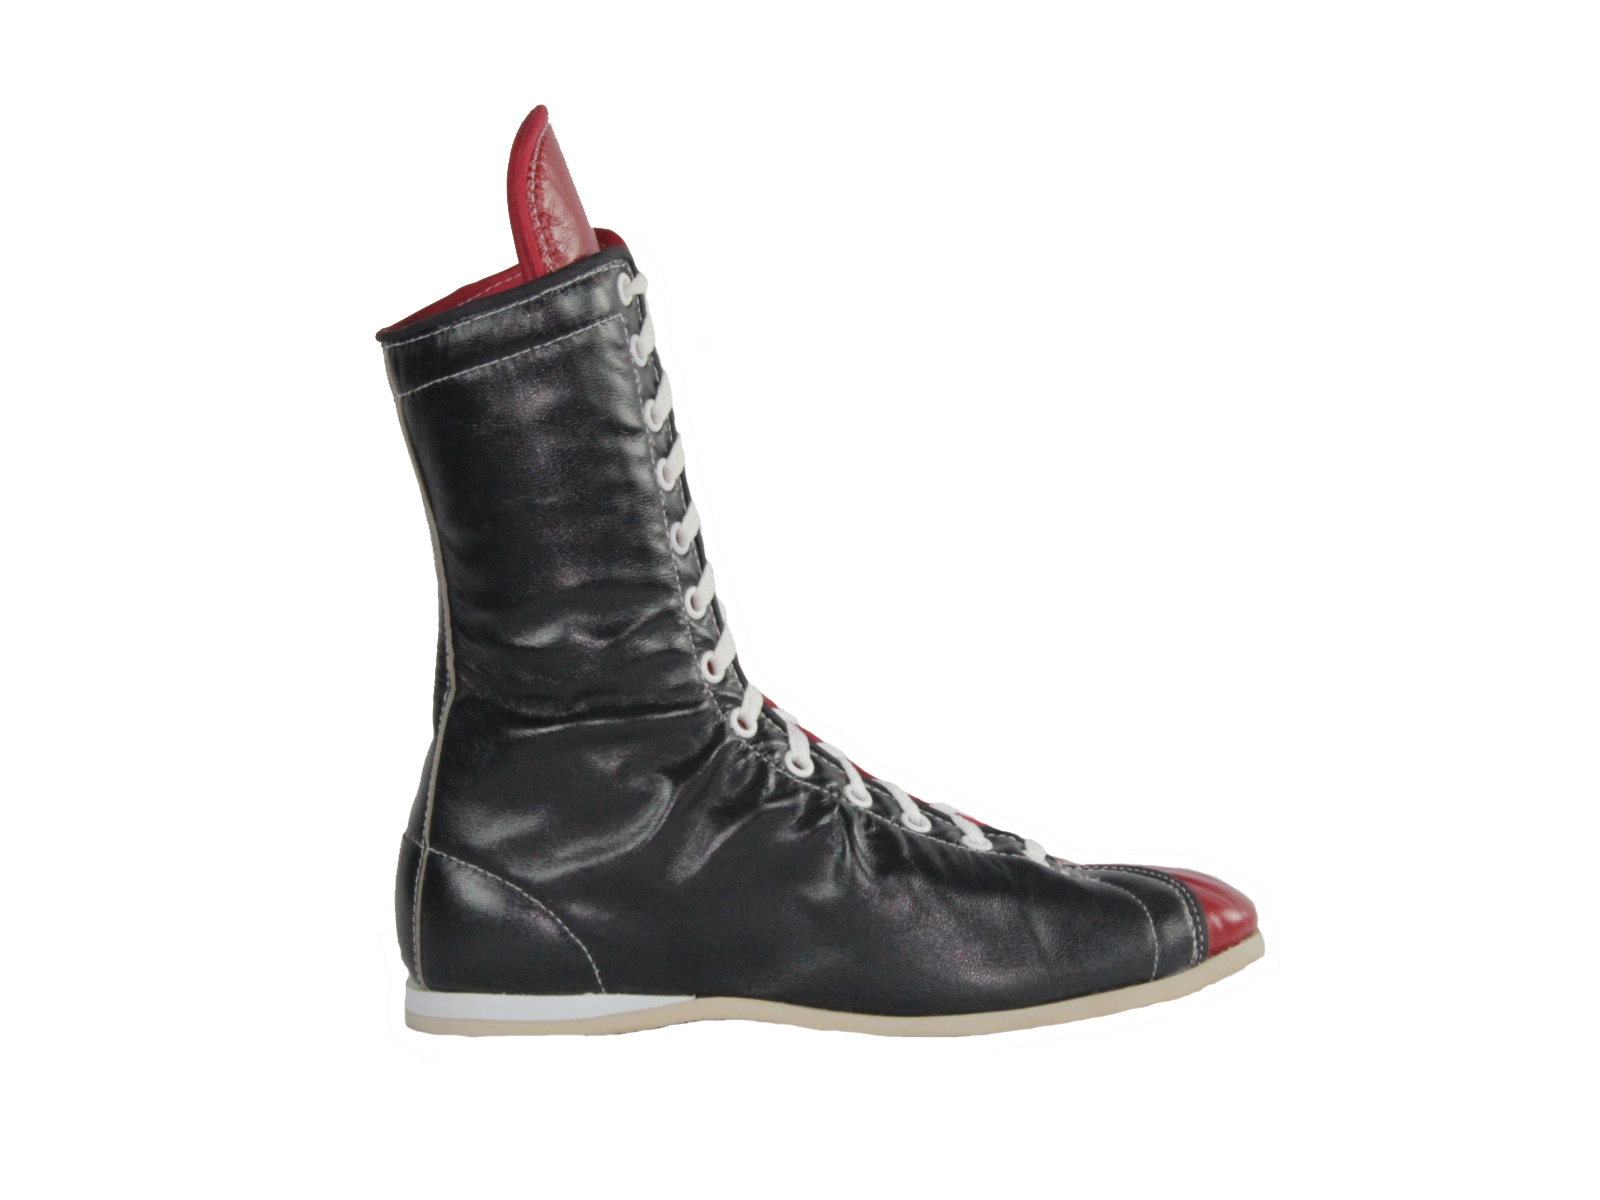 Two-Color Leather Boxing Shoes